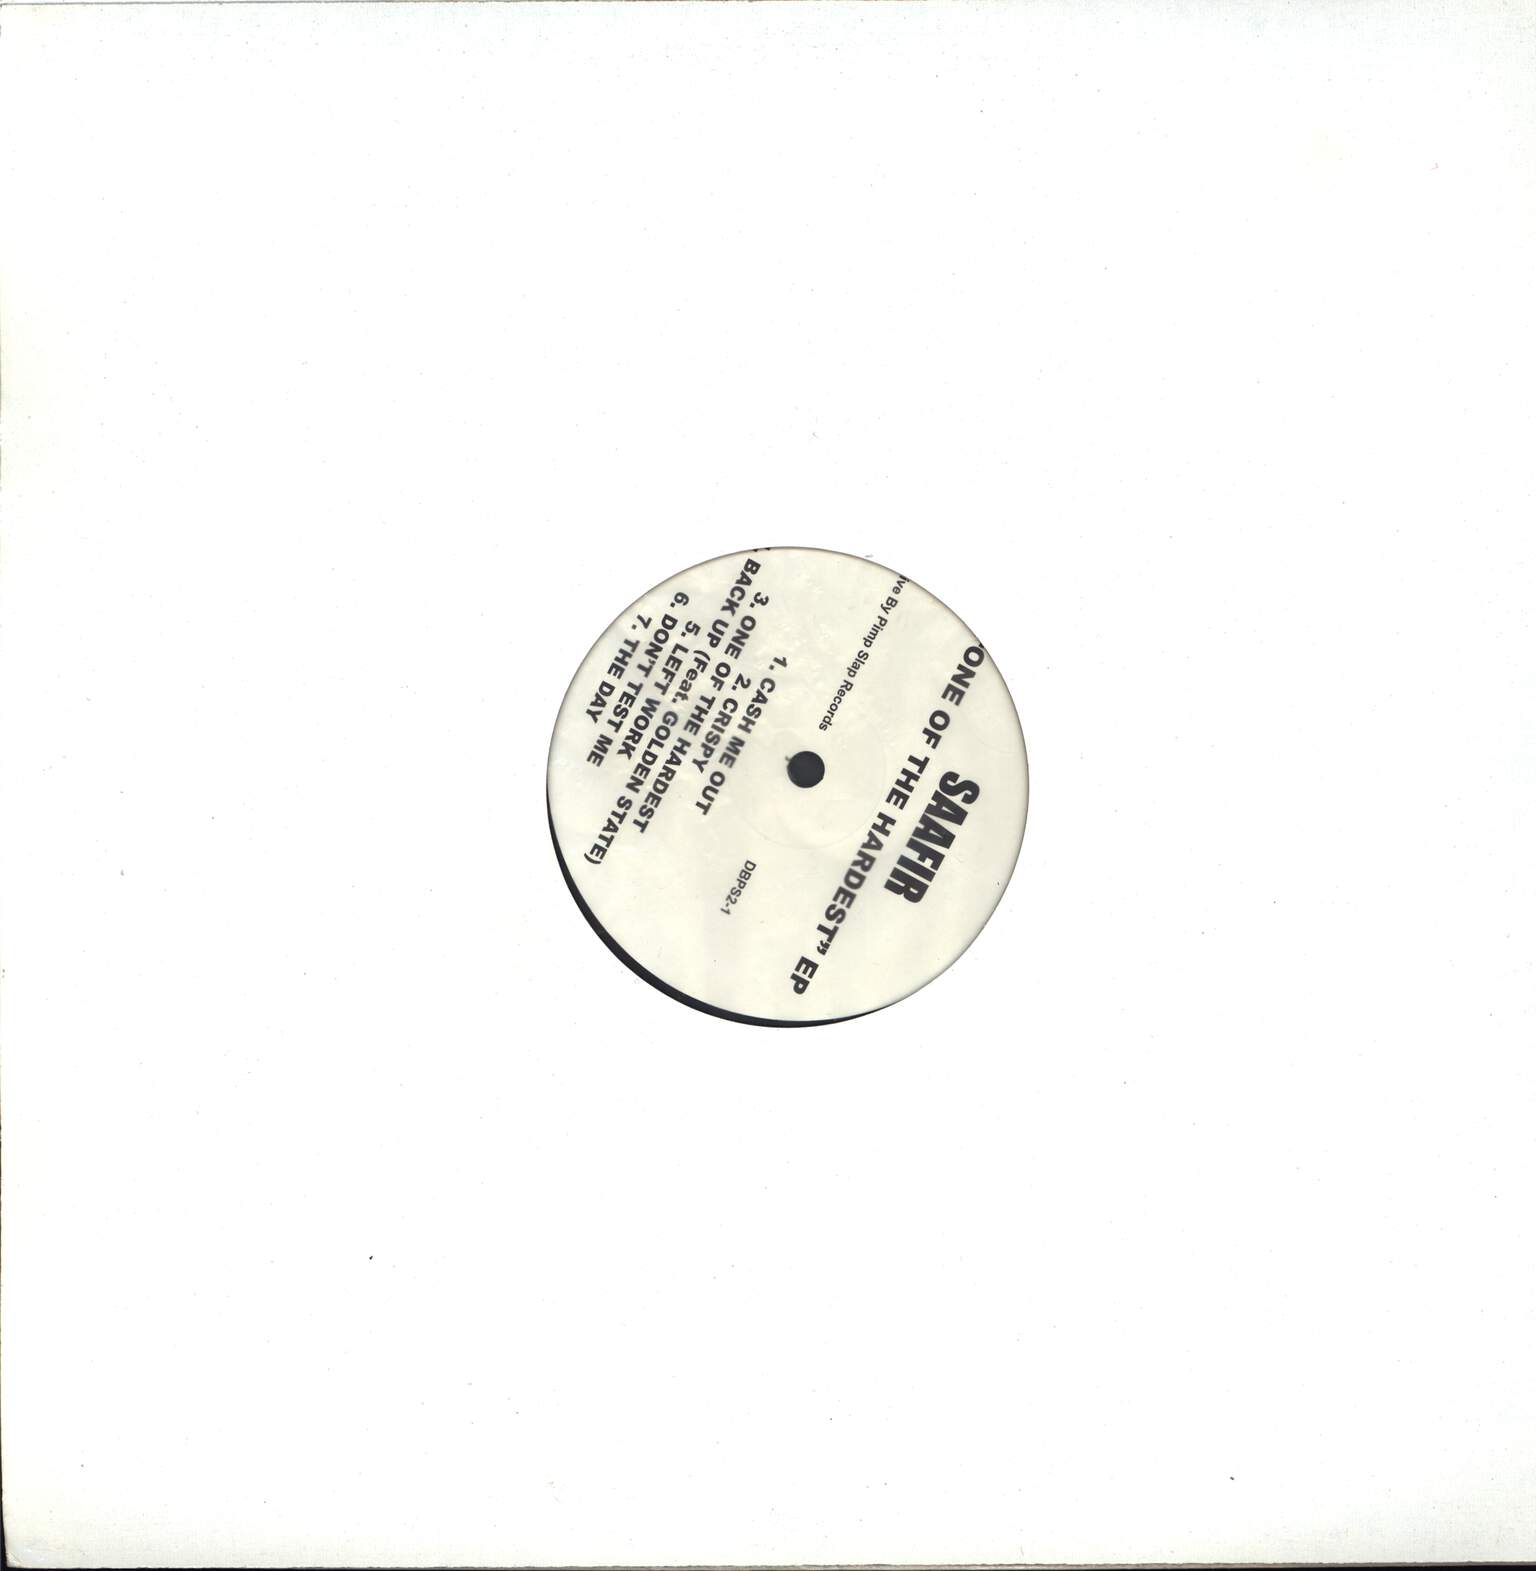 "Saafir: One Of The Hardest EP, 12"" Maxi Single (Vinyl)"